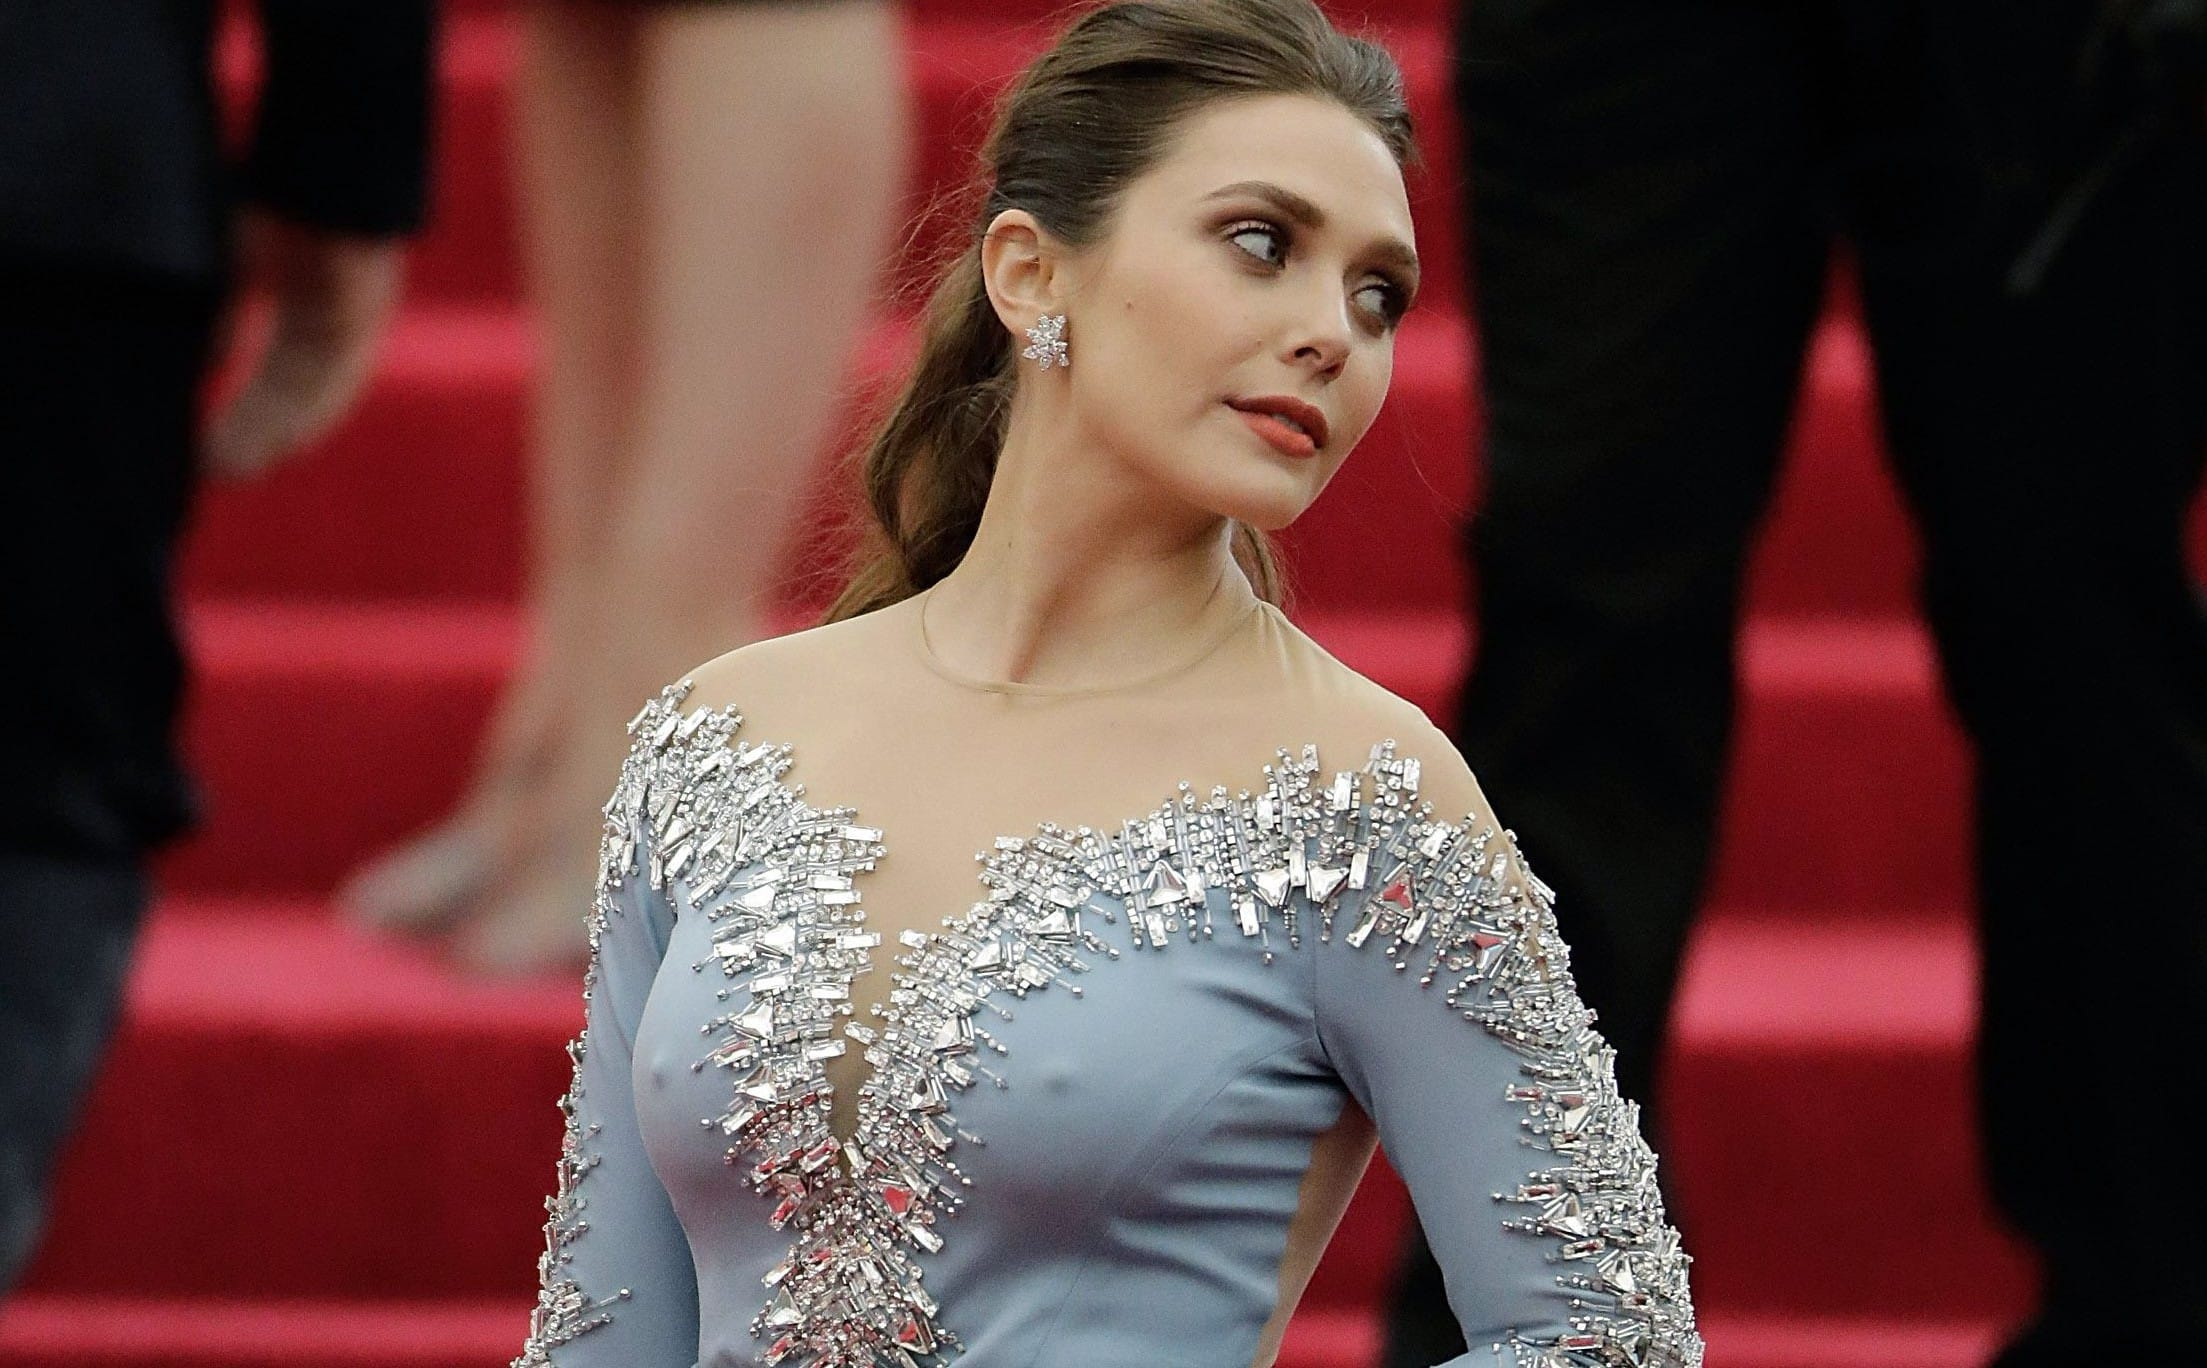 Elizabeth Olsen Instagram Wallpapers   New HD Wallpapers 2207x1368